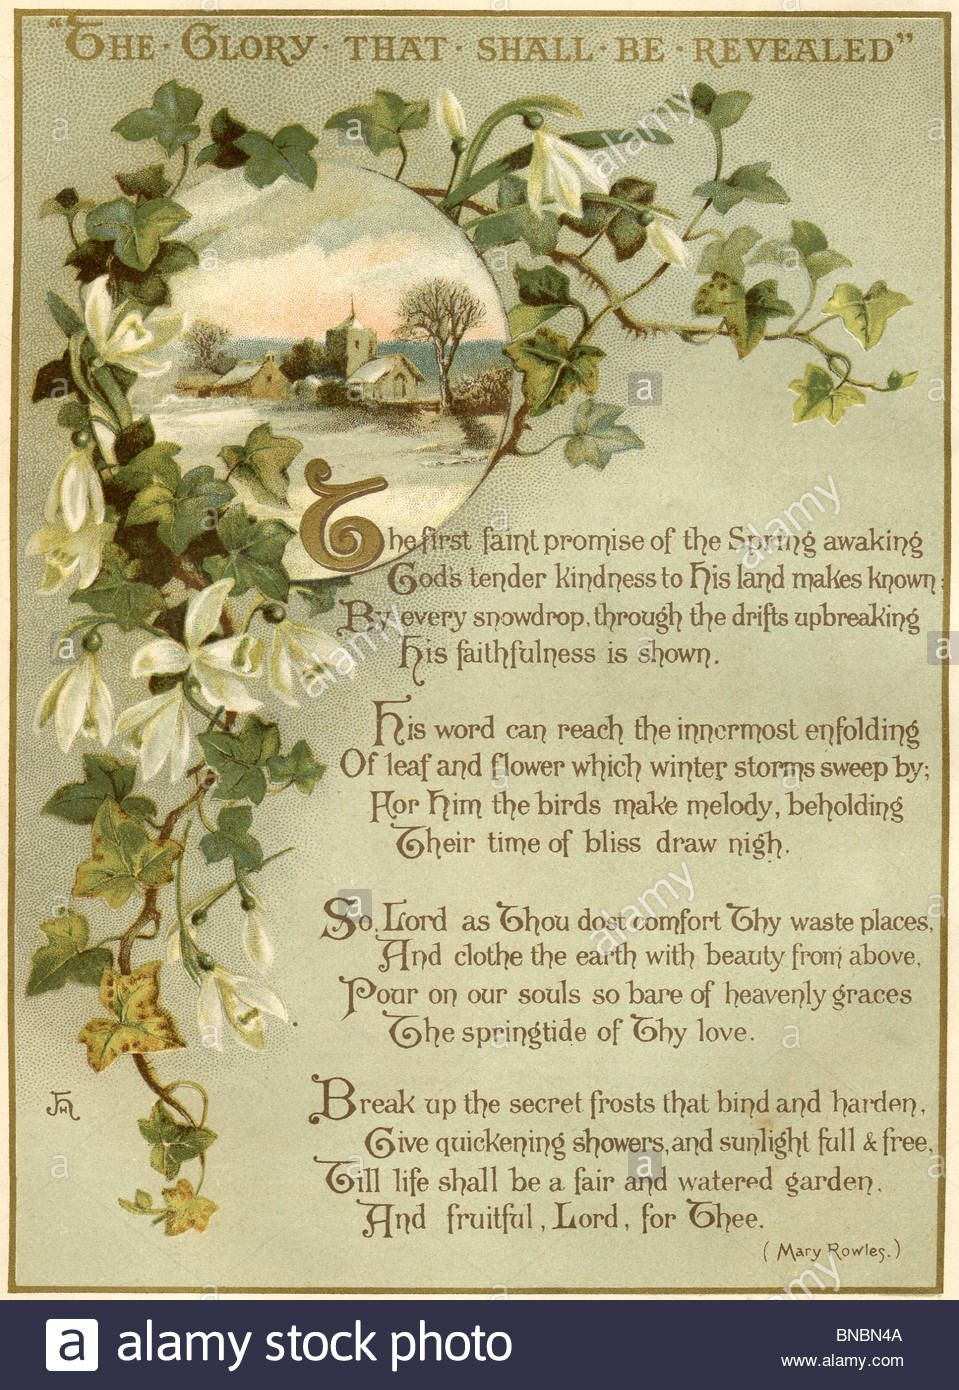 Download This Stock Image Poem With An Ivy And Snowdrop